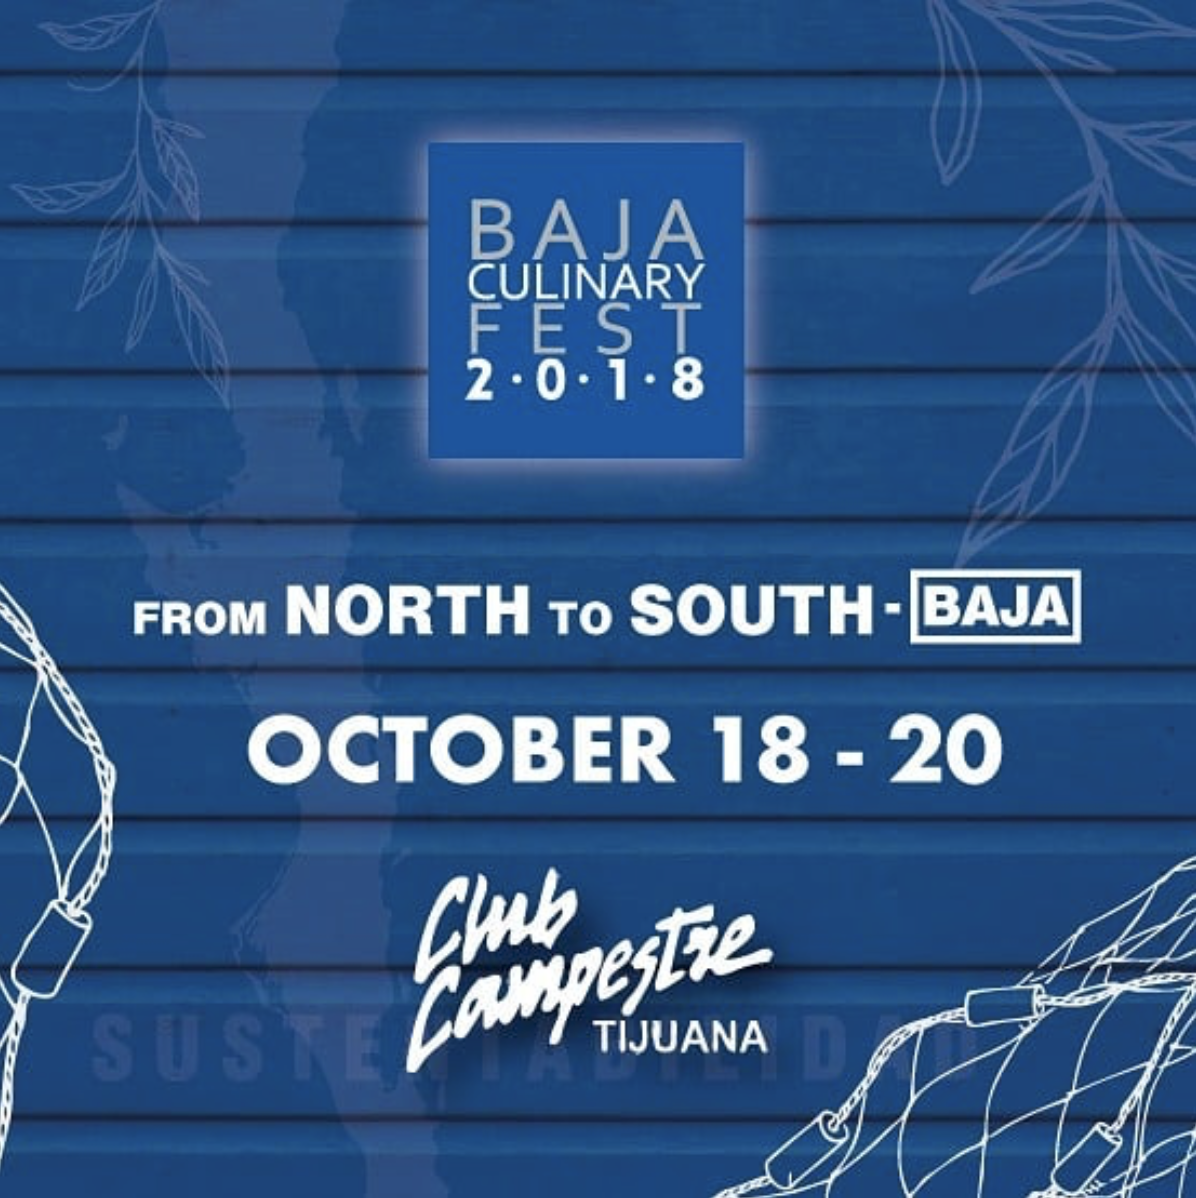 Don't miss the Baja Culinary Fest This October 18-20!